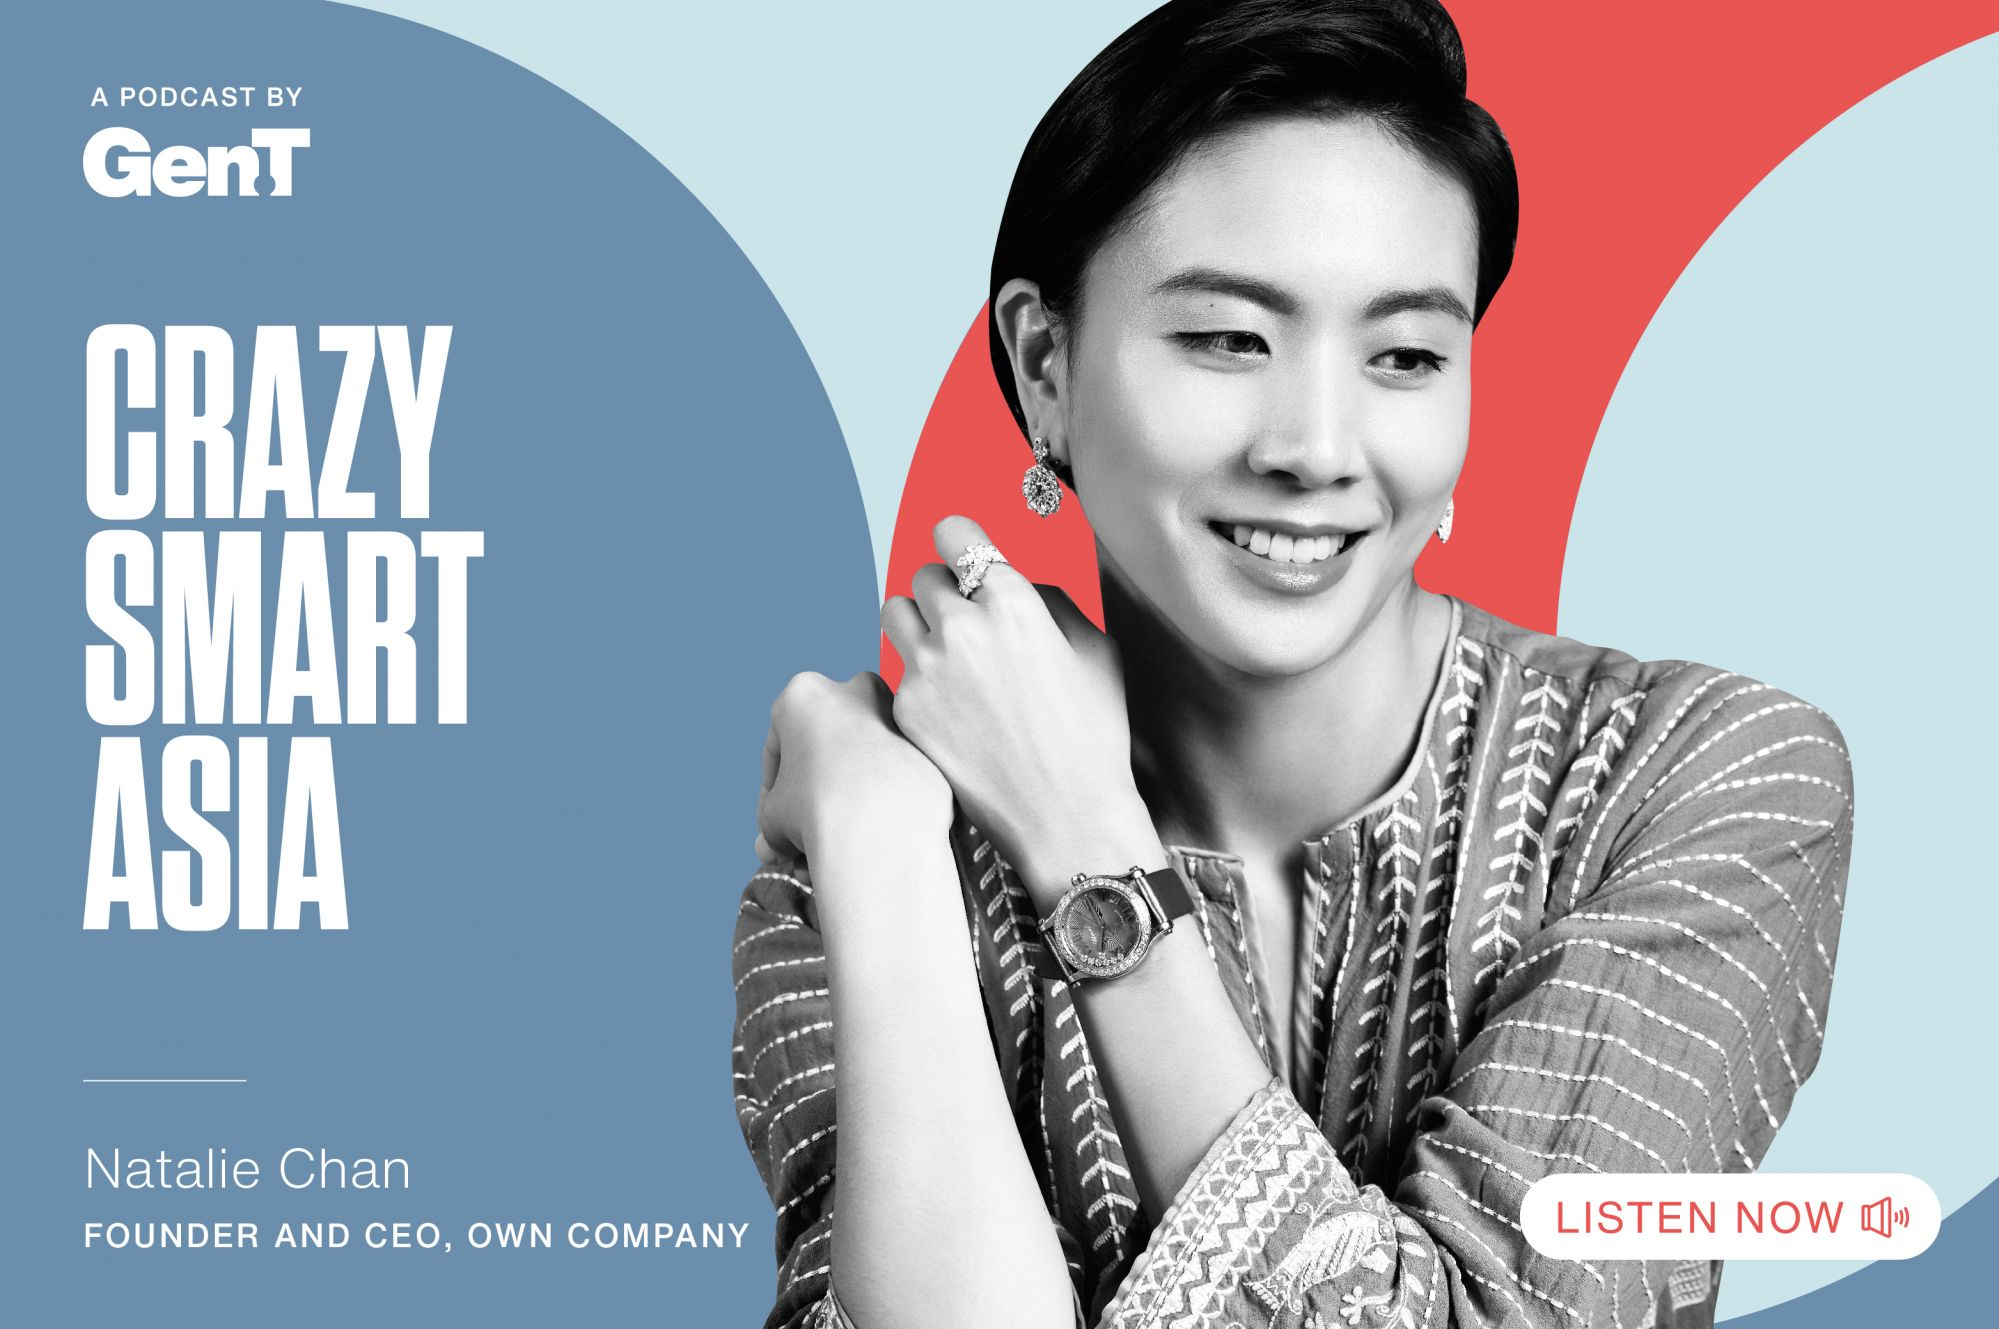 Crazy Smart Asia: Natalie Chan—Creating An Education Revolution